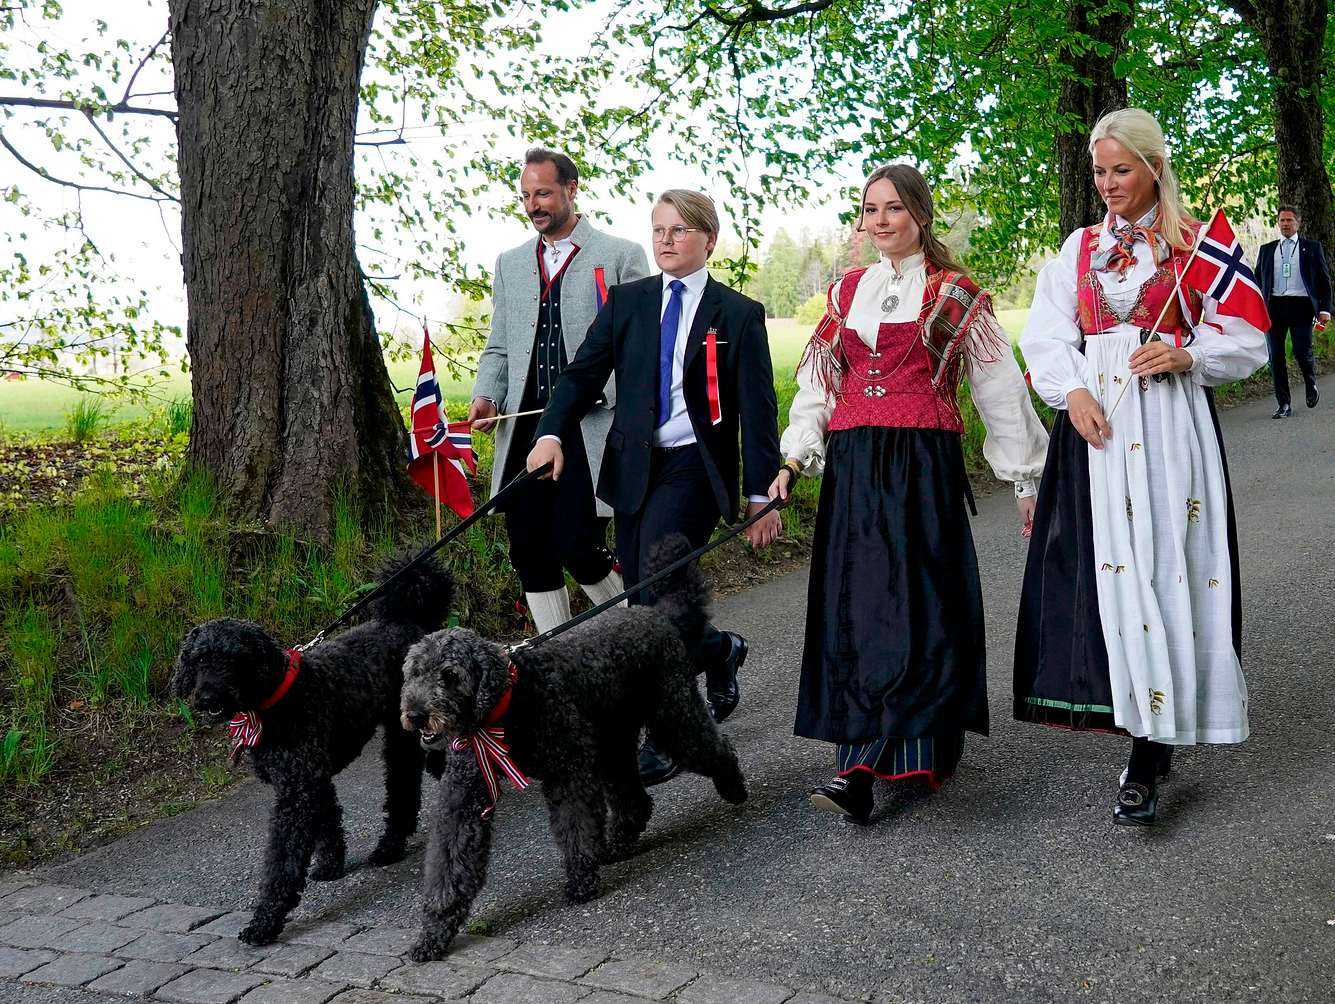 Nationalfeiertag in Norwegen mit der Kronprinzenfamilie am 17. Mai 2020.